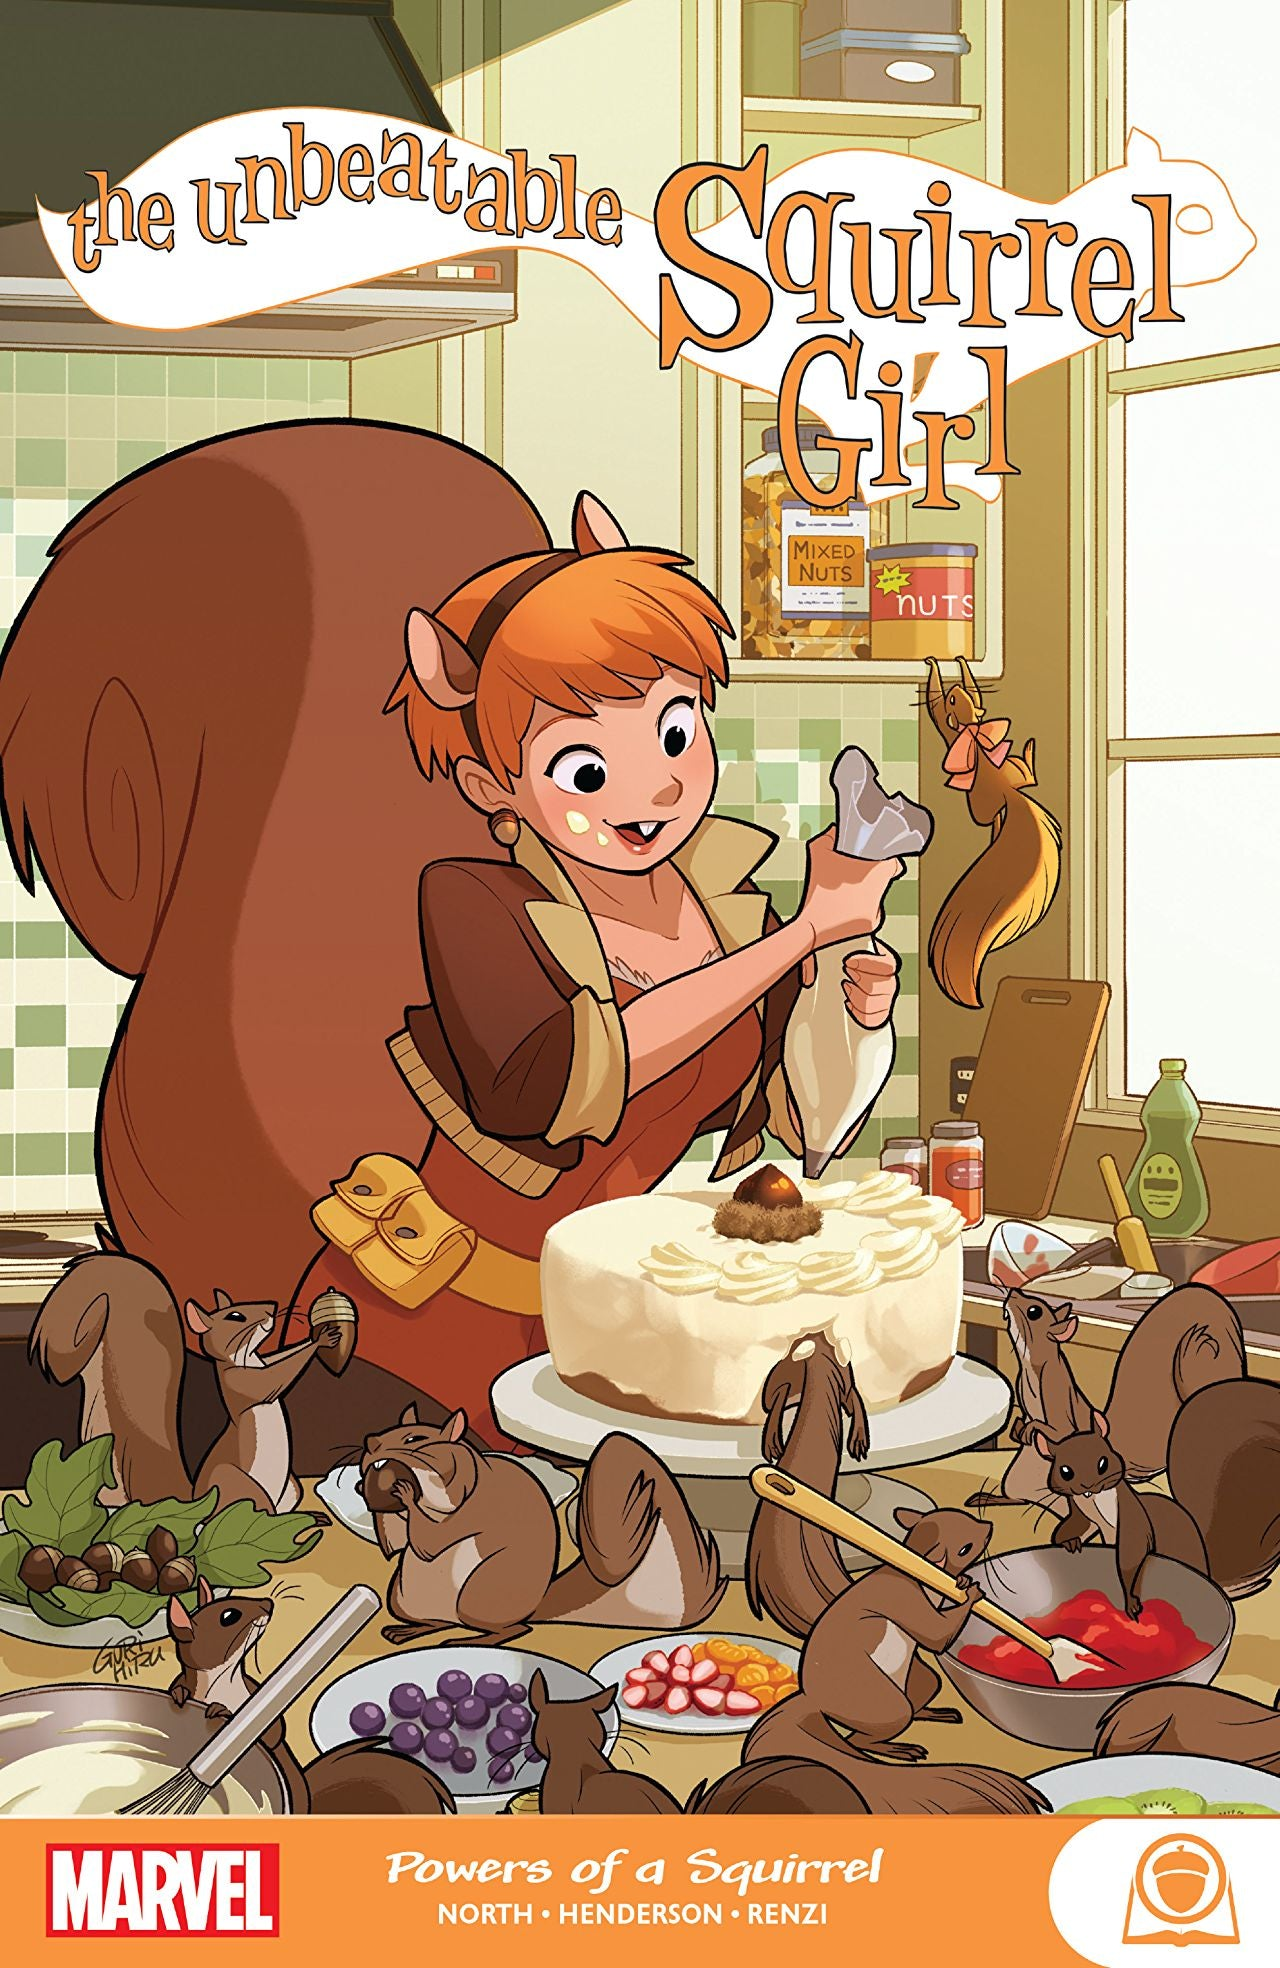 Unbeatable Squirrel Girl (2015): Powers of a Squirrel